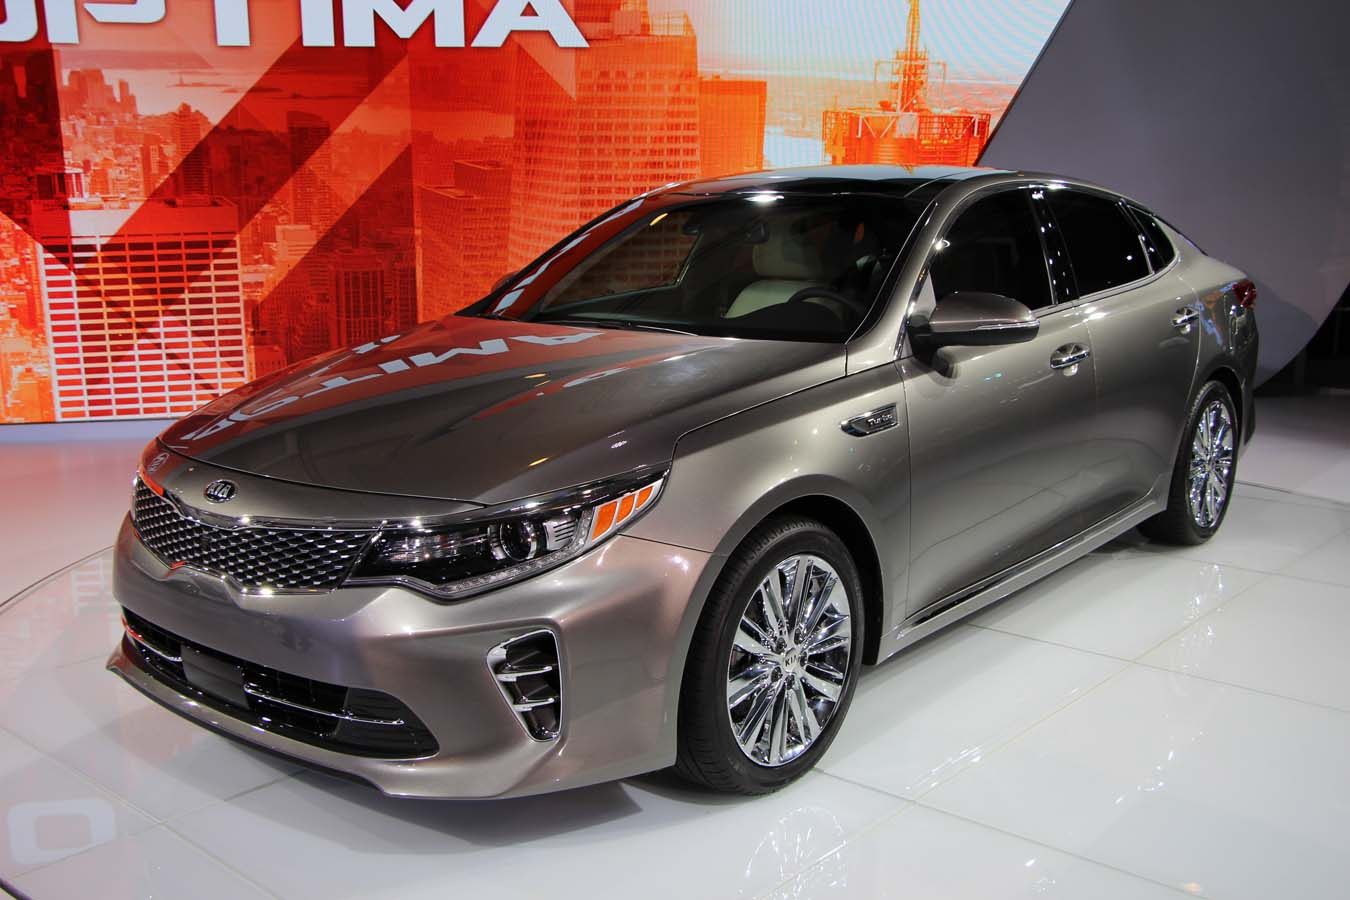 New 2016 kia optima debuts in new york ecolodriver has elegant lines that do well to reflect whats been featured on other recently revealed vehicles in the segment indeed the 2016 kia optima looks sciox Images